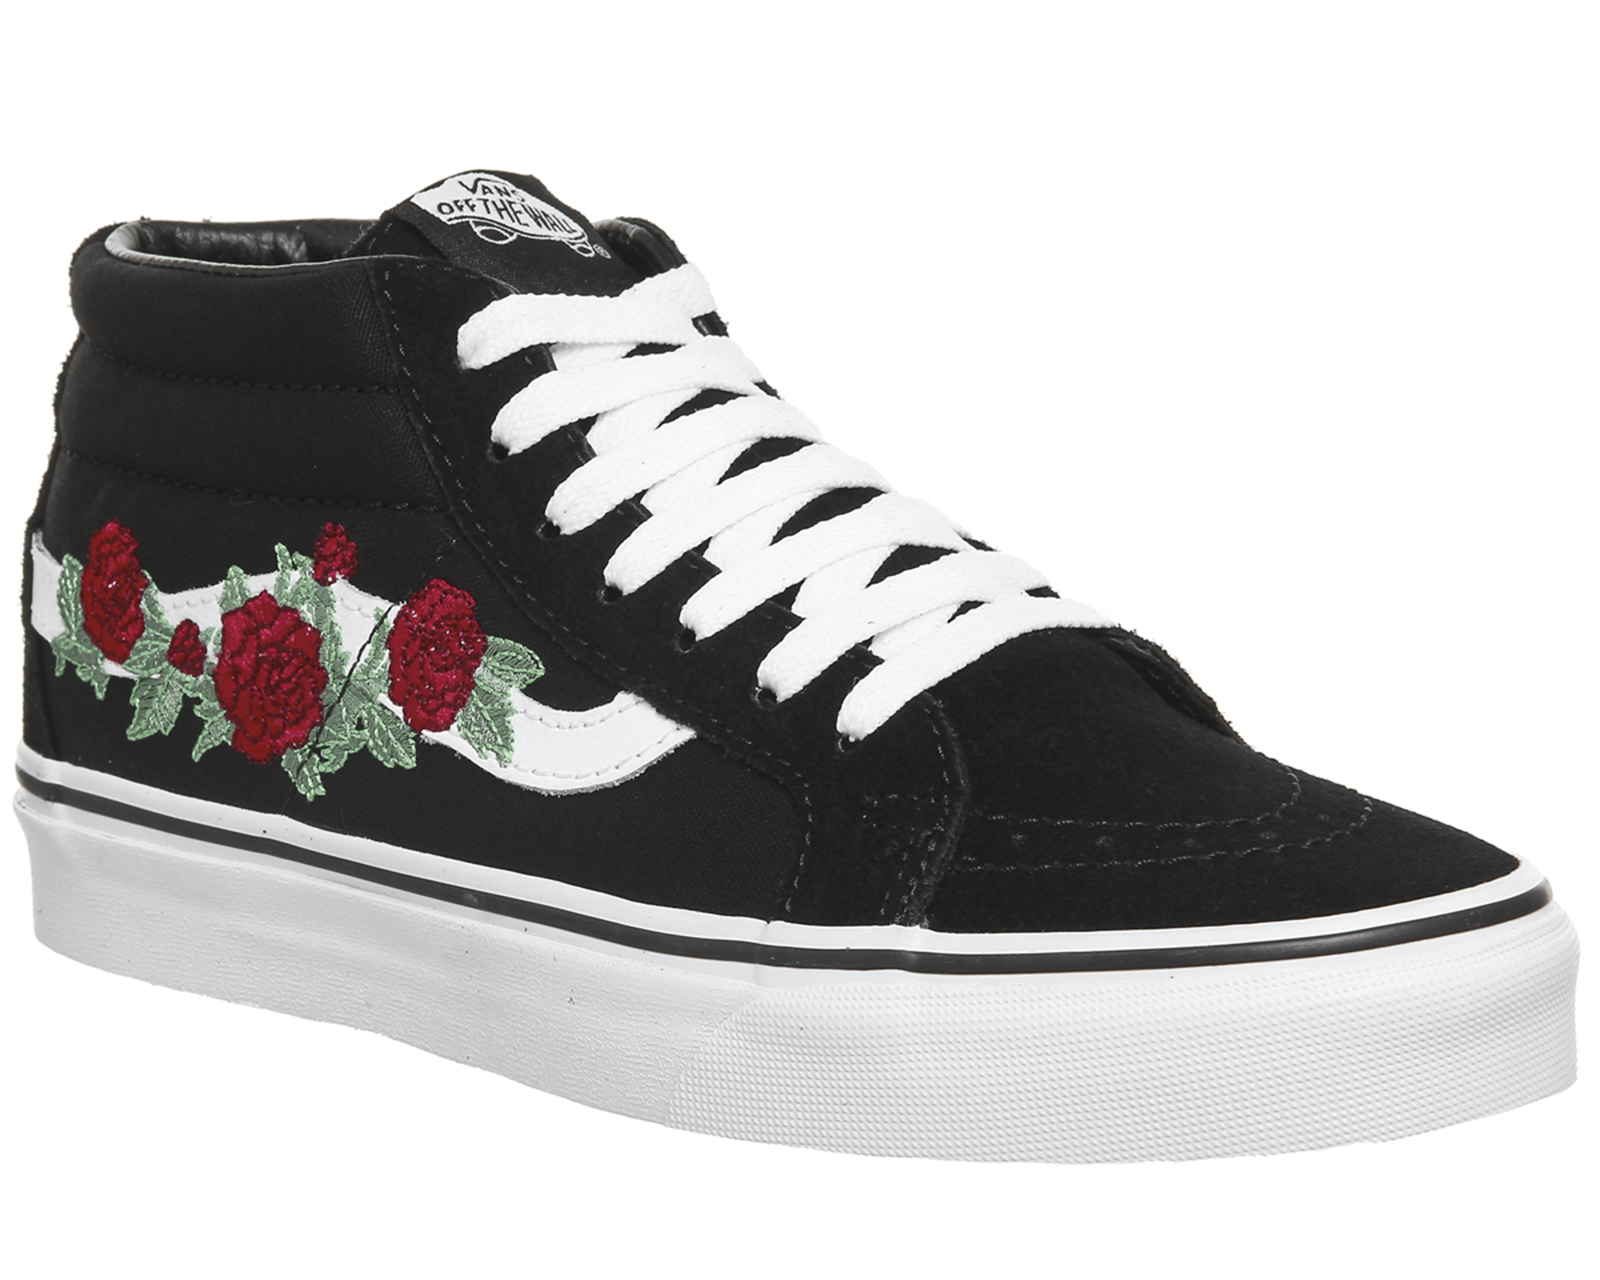 1bb9185aed Sentinel Womens Vans Sk8 Mid Trainers BLACK RED ROSE Trainers Shoes